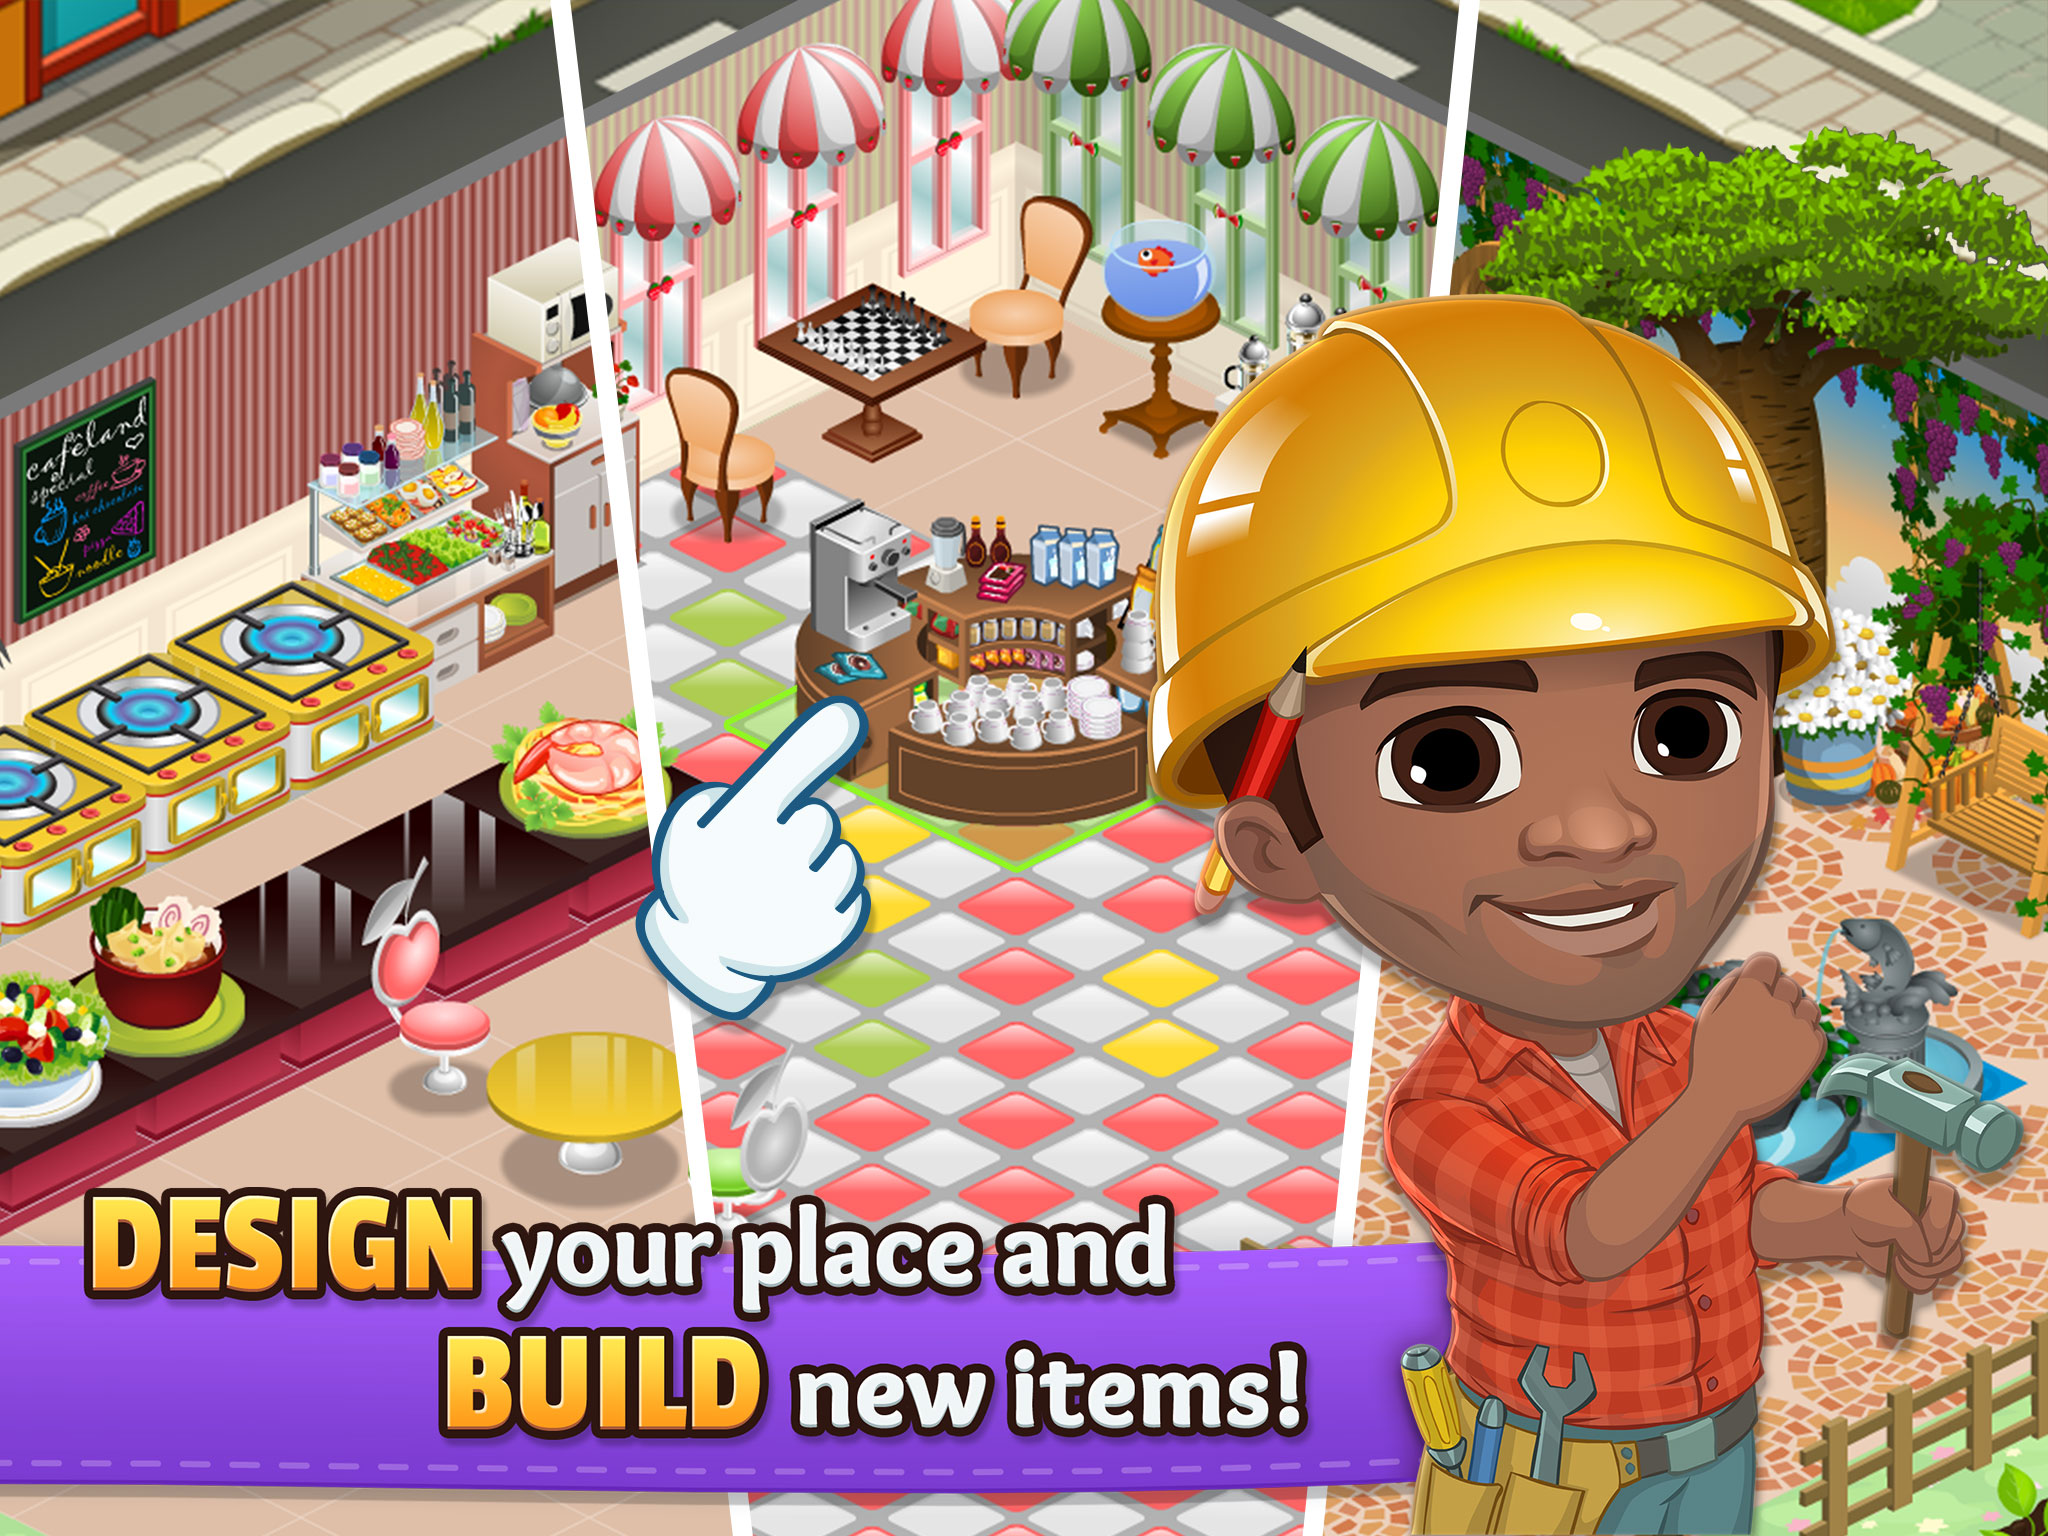 DESIGN your place and BUILD new items!